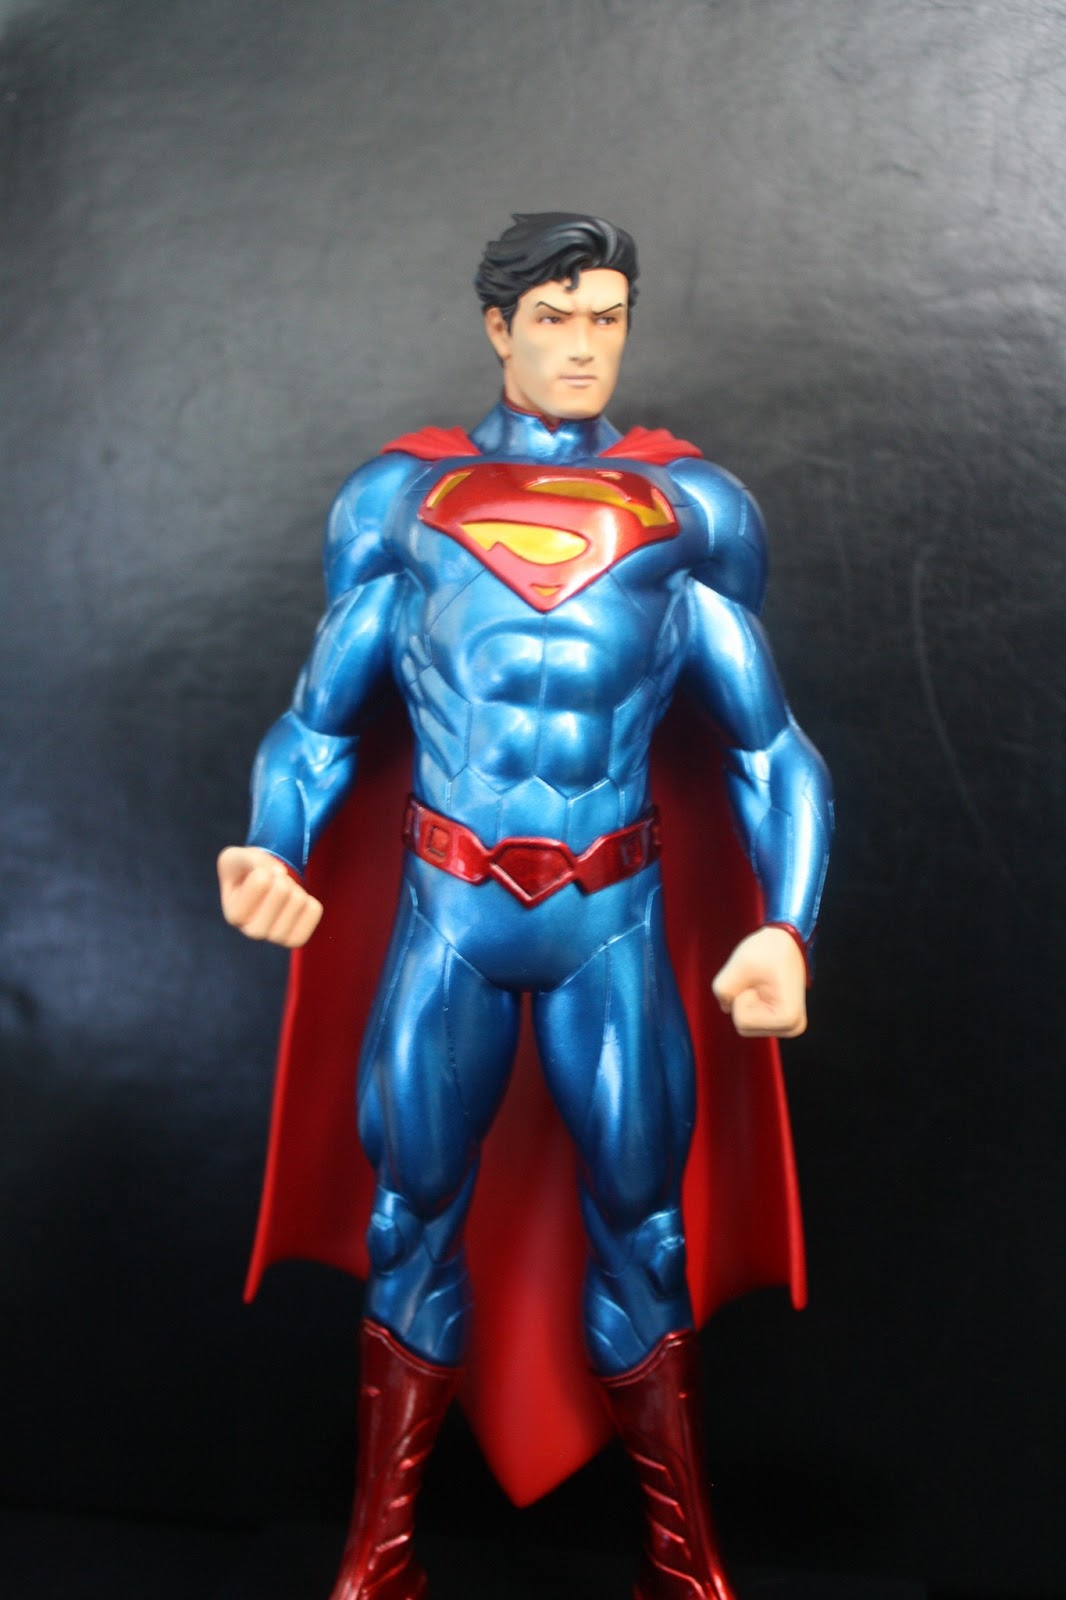 monitos y cosplay superman new 52 kotobukiya